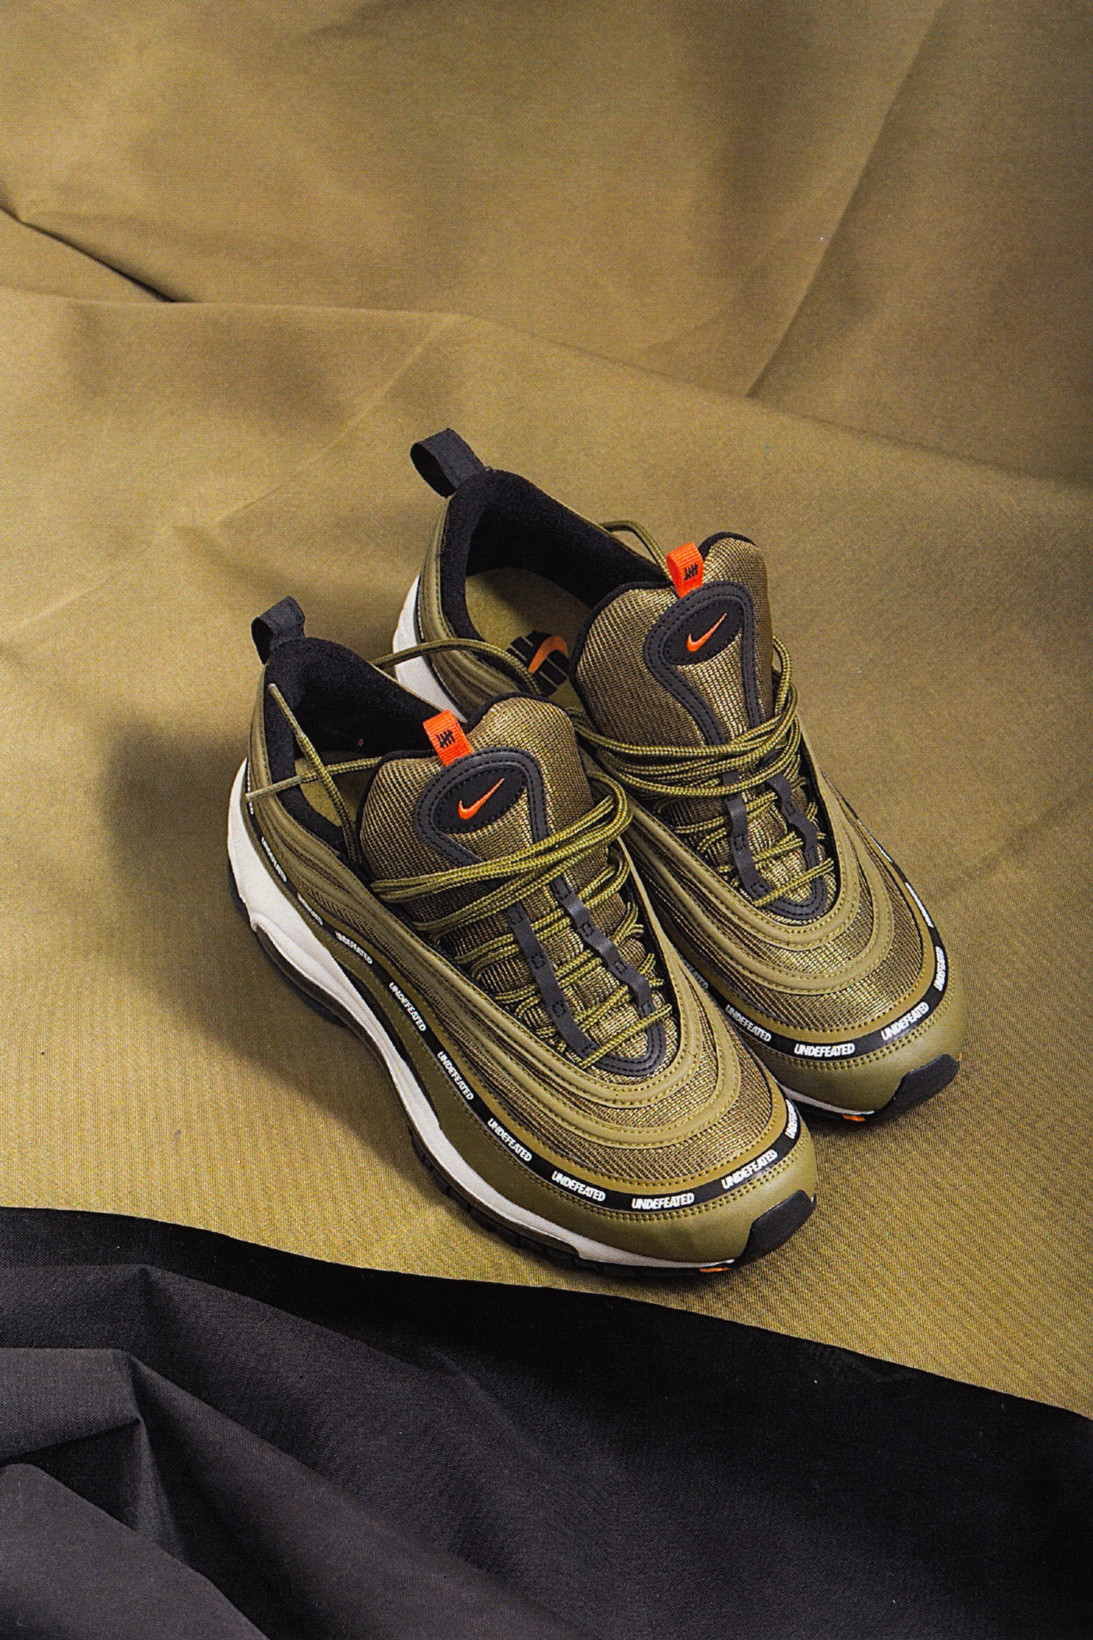 UNDEFEATED x Nike Air Max 97 Olive